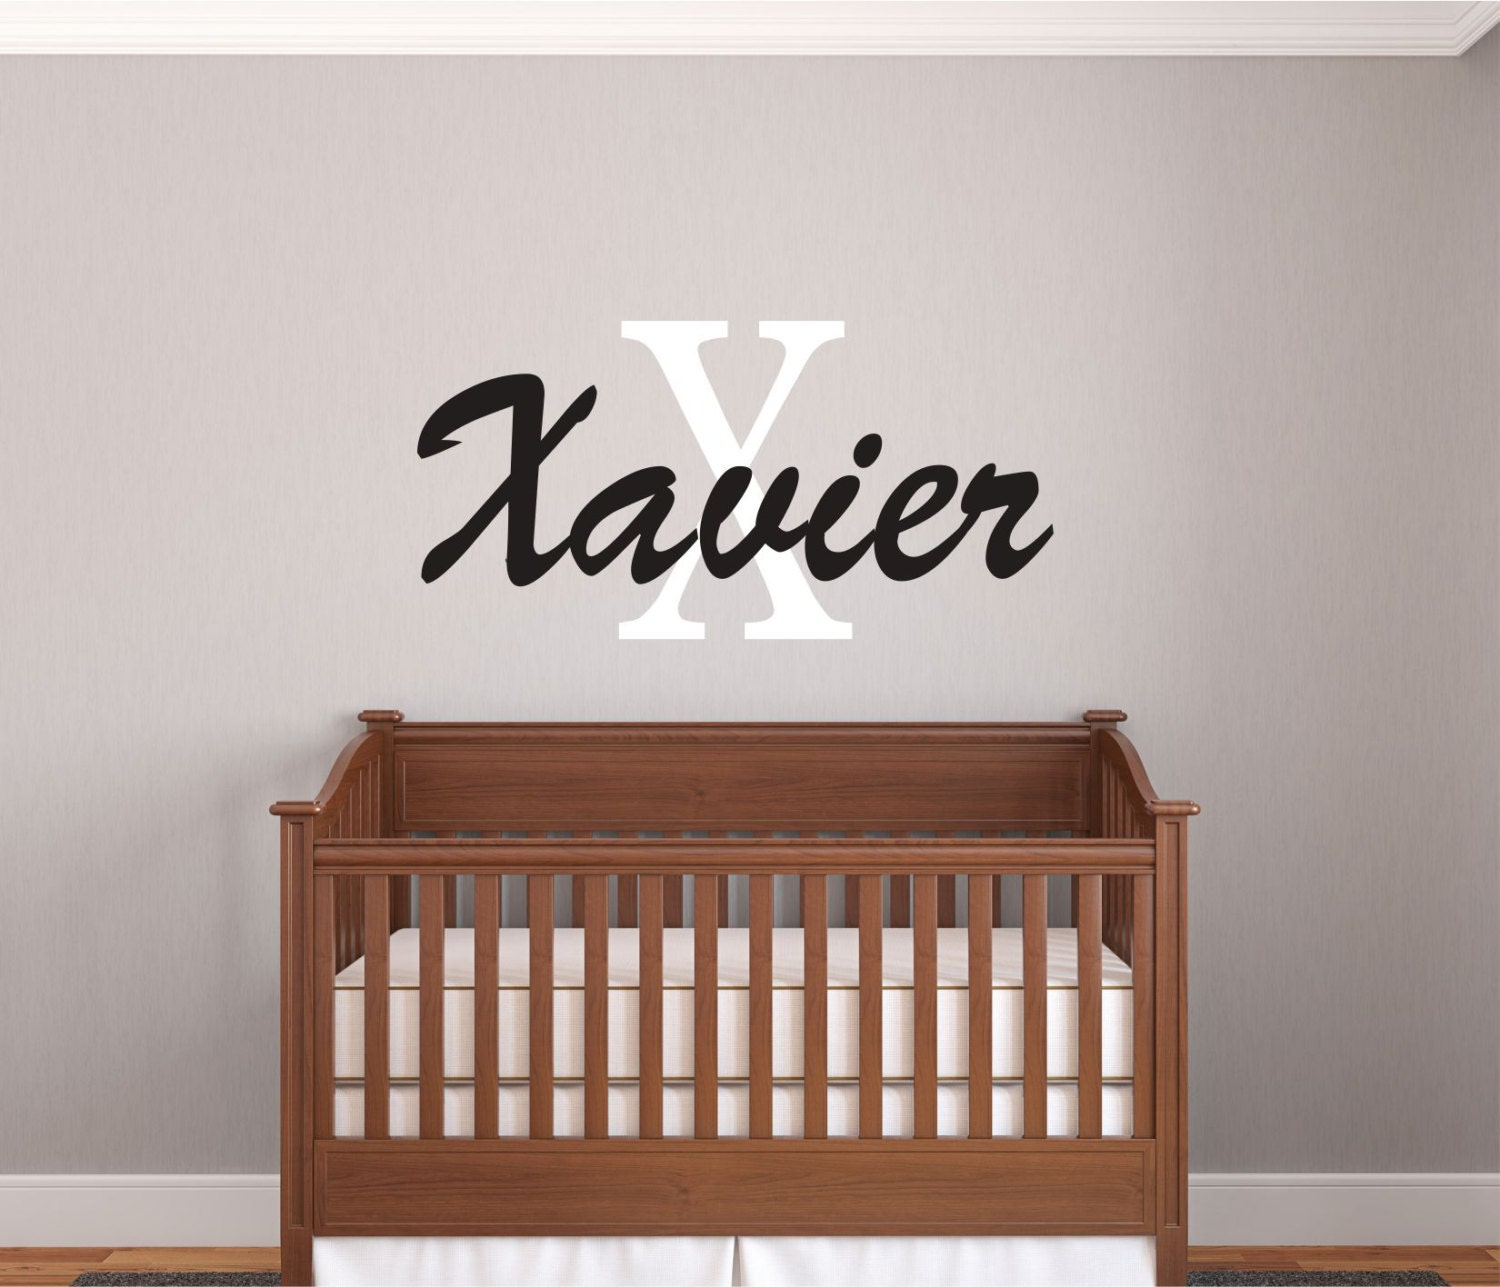 boys name decals name wall decal boys room decor baby wall decals nursery wall decals. Black Bedroom Furniture Sets. Home Design Ideas